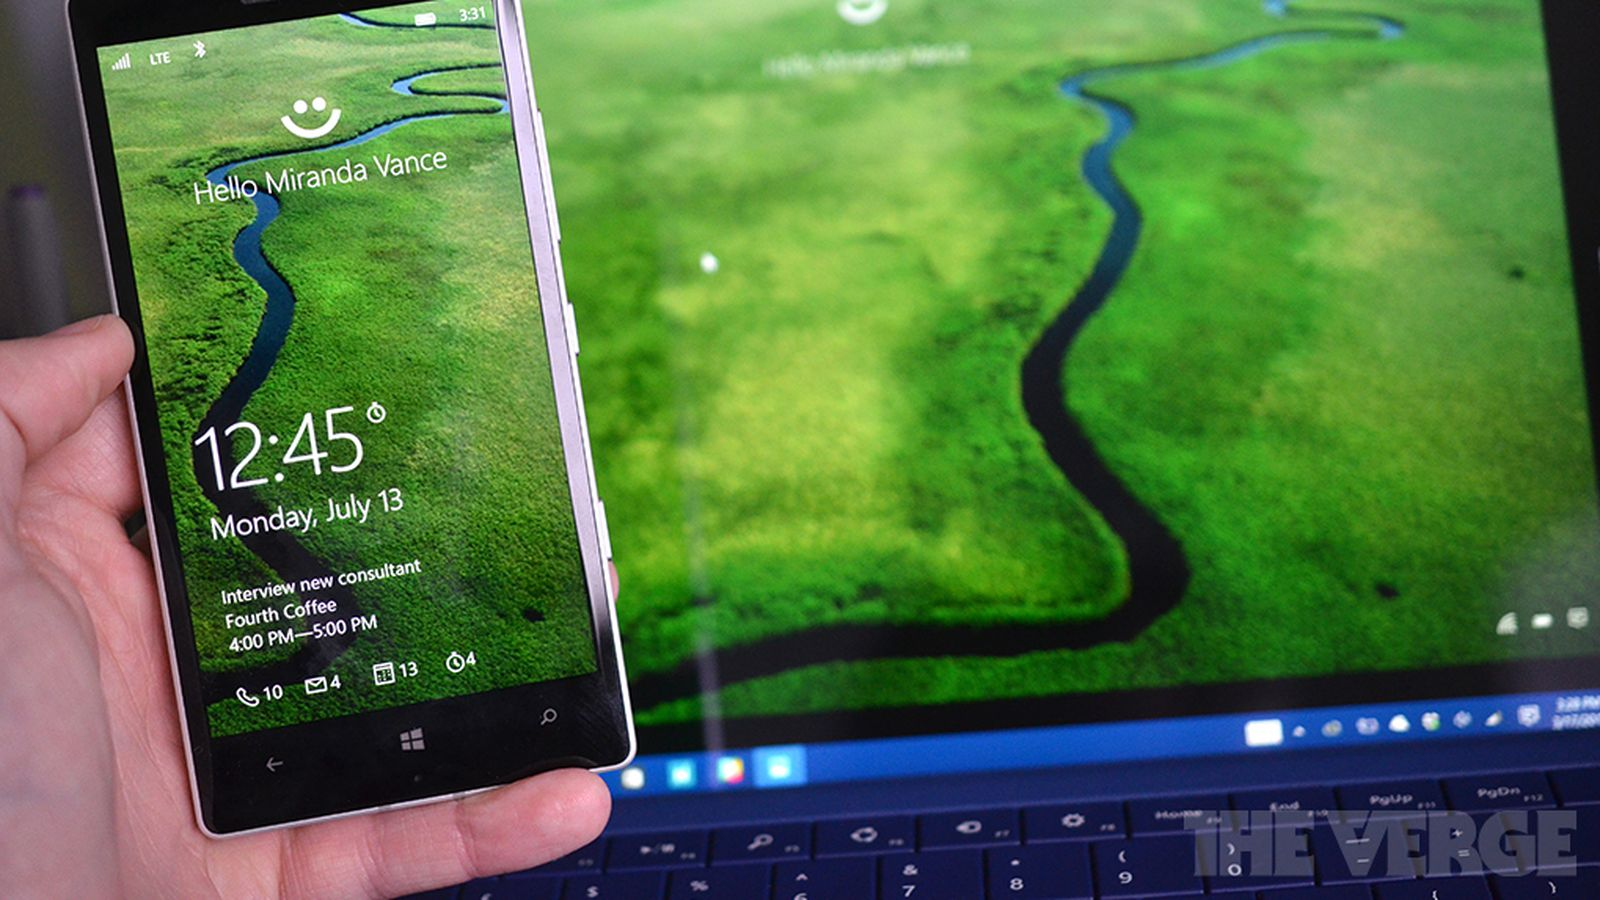 Windows 10 Mobile will support fingerprint scanners this summer | The Verge